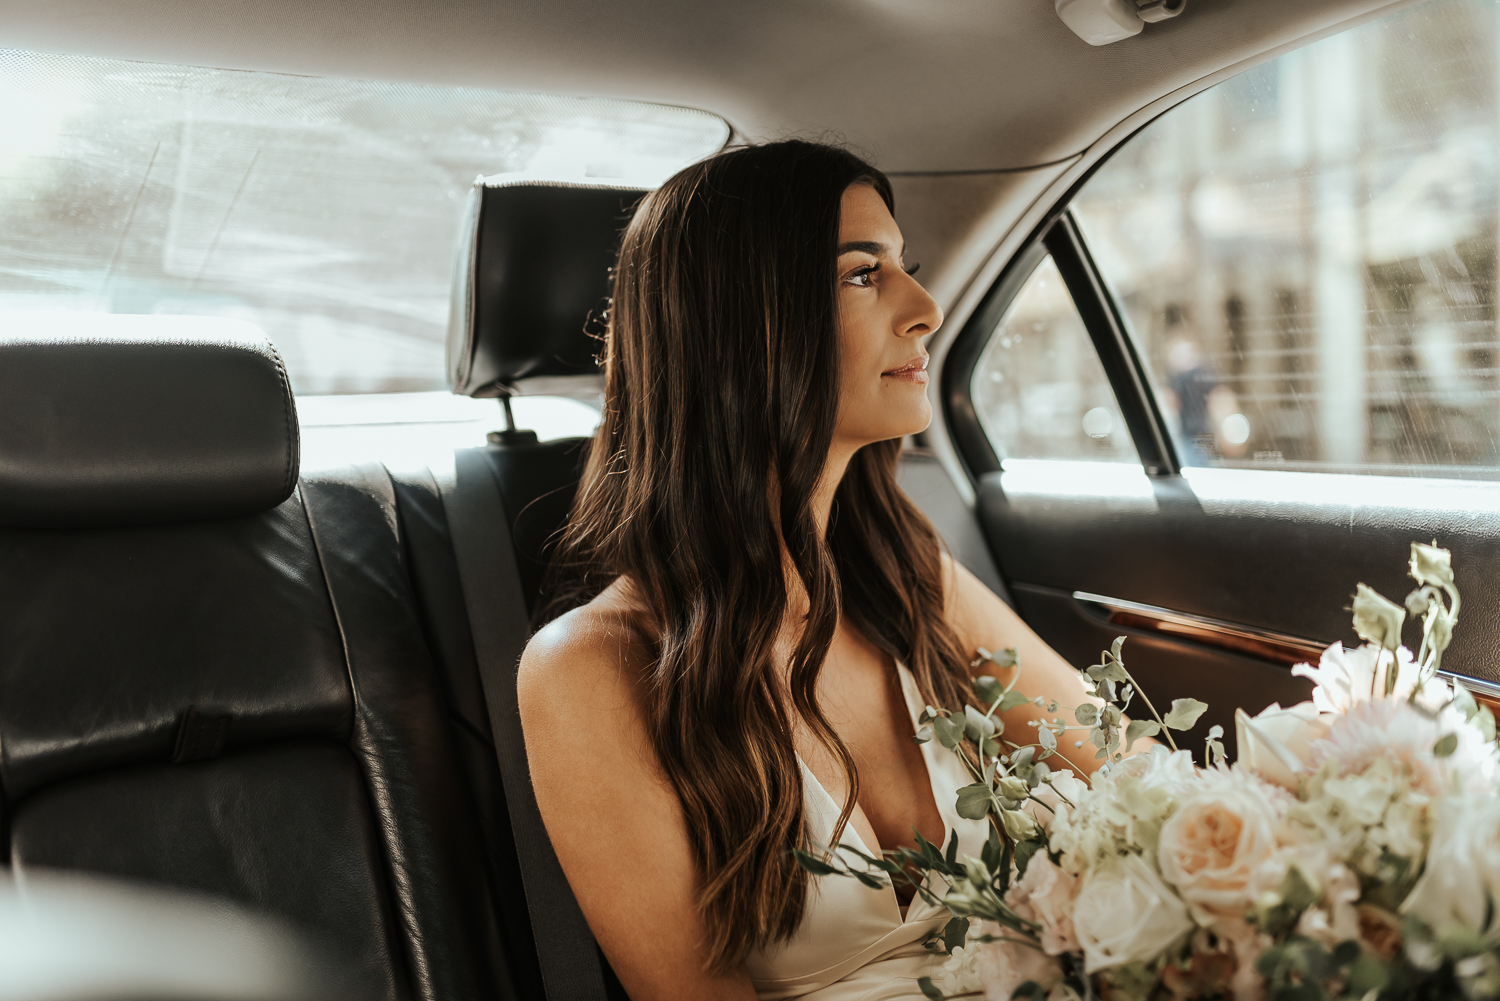 On the way to the ceremony - bride in an Uber - Philly elopement